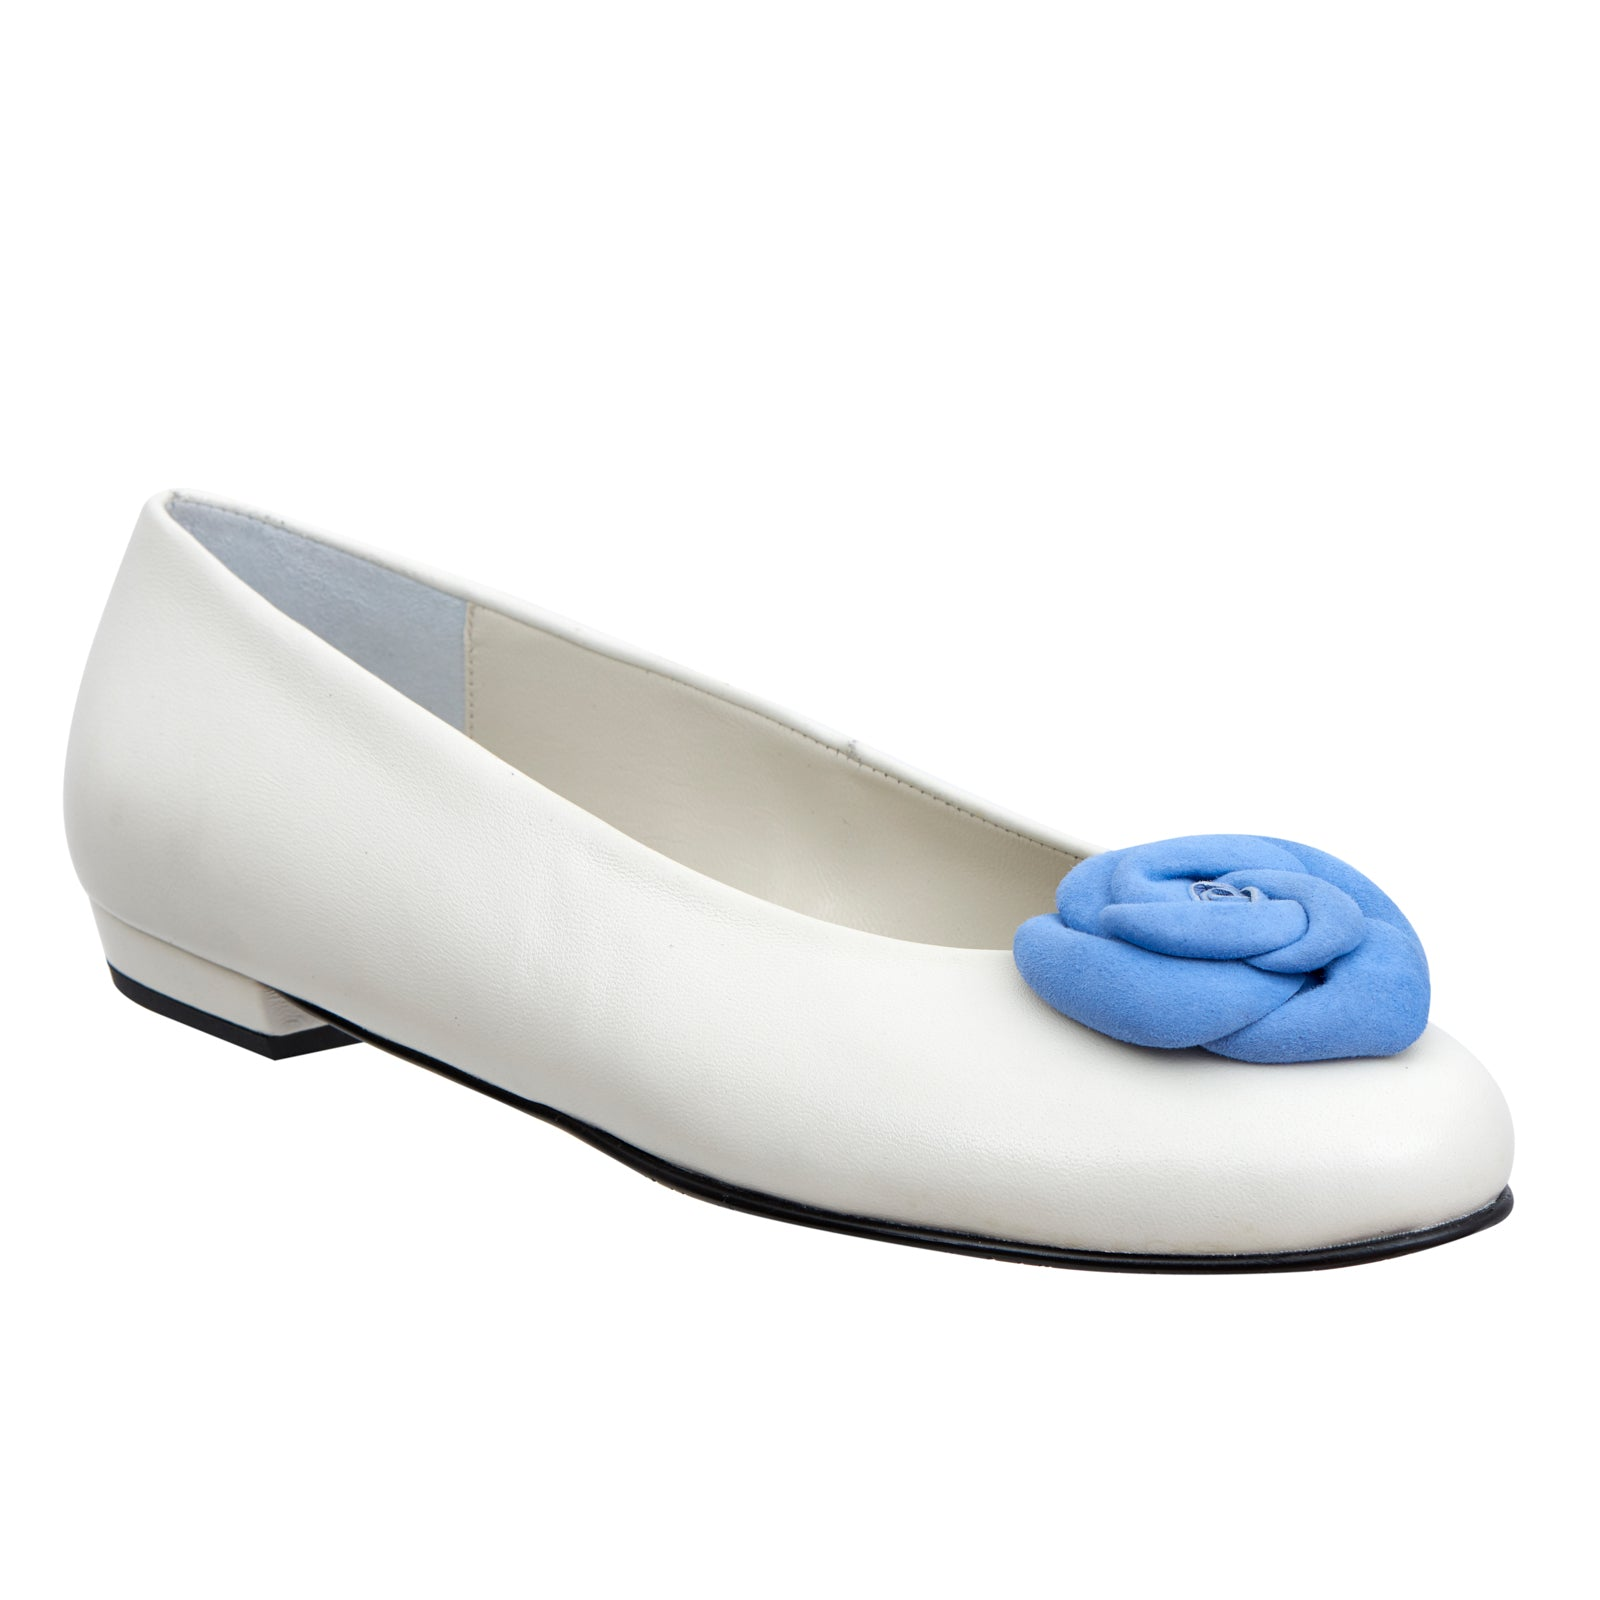 Yama white leather pastel blue flower